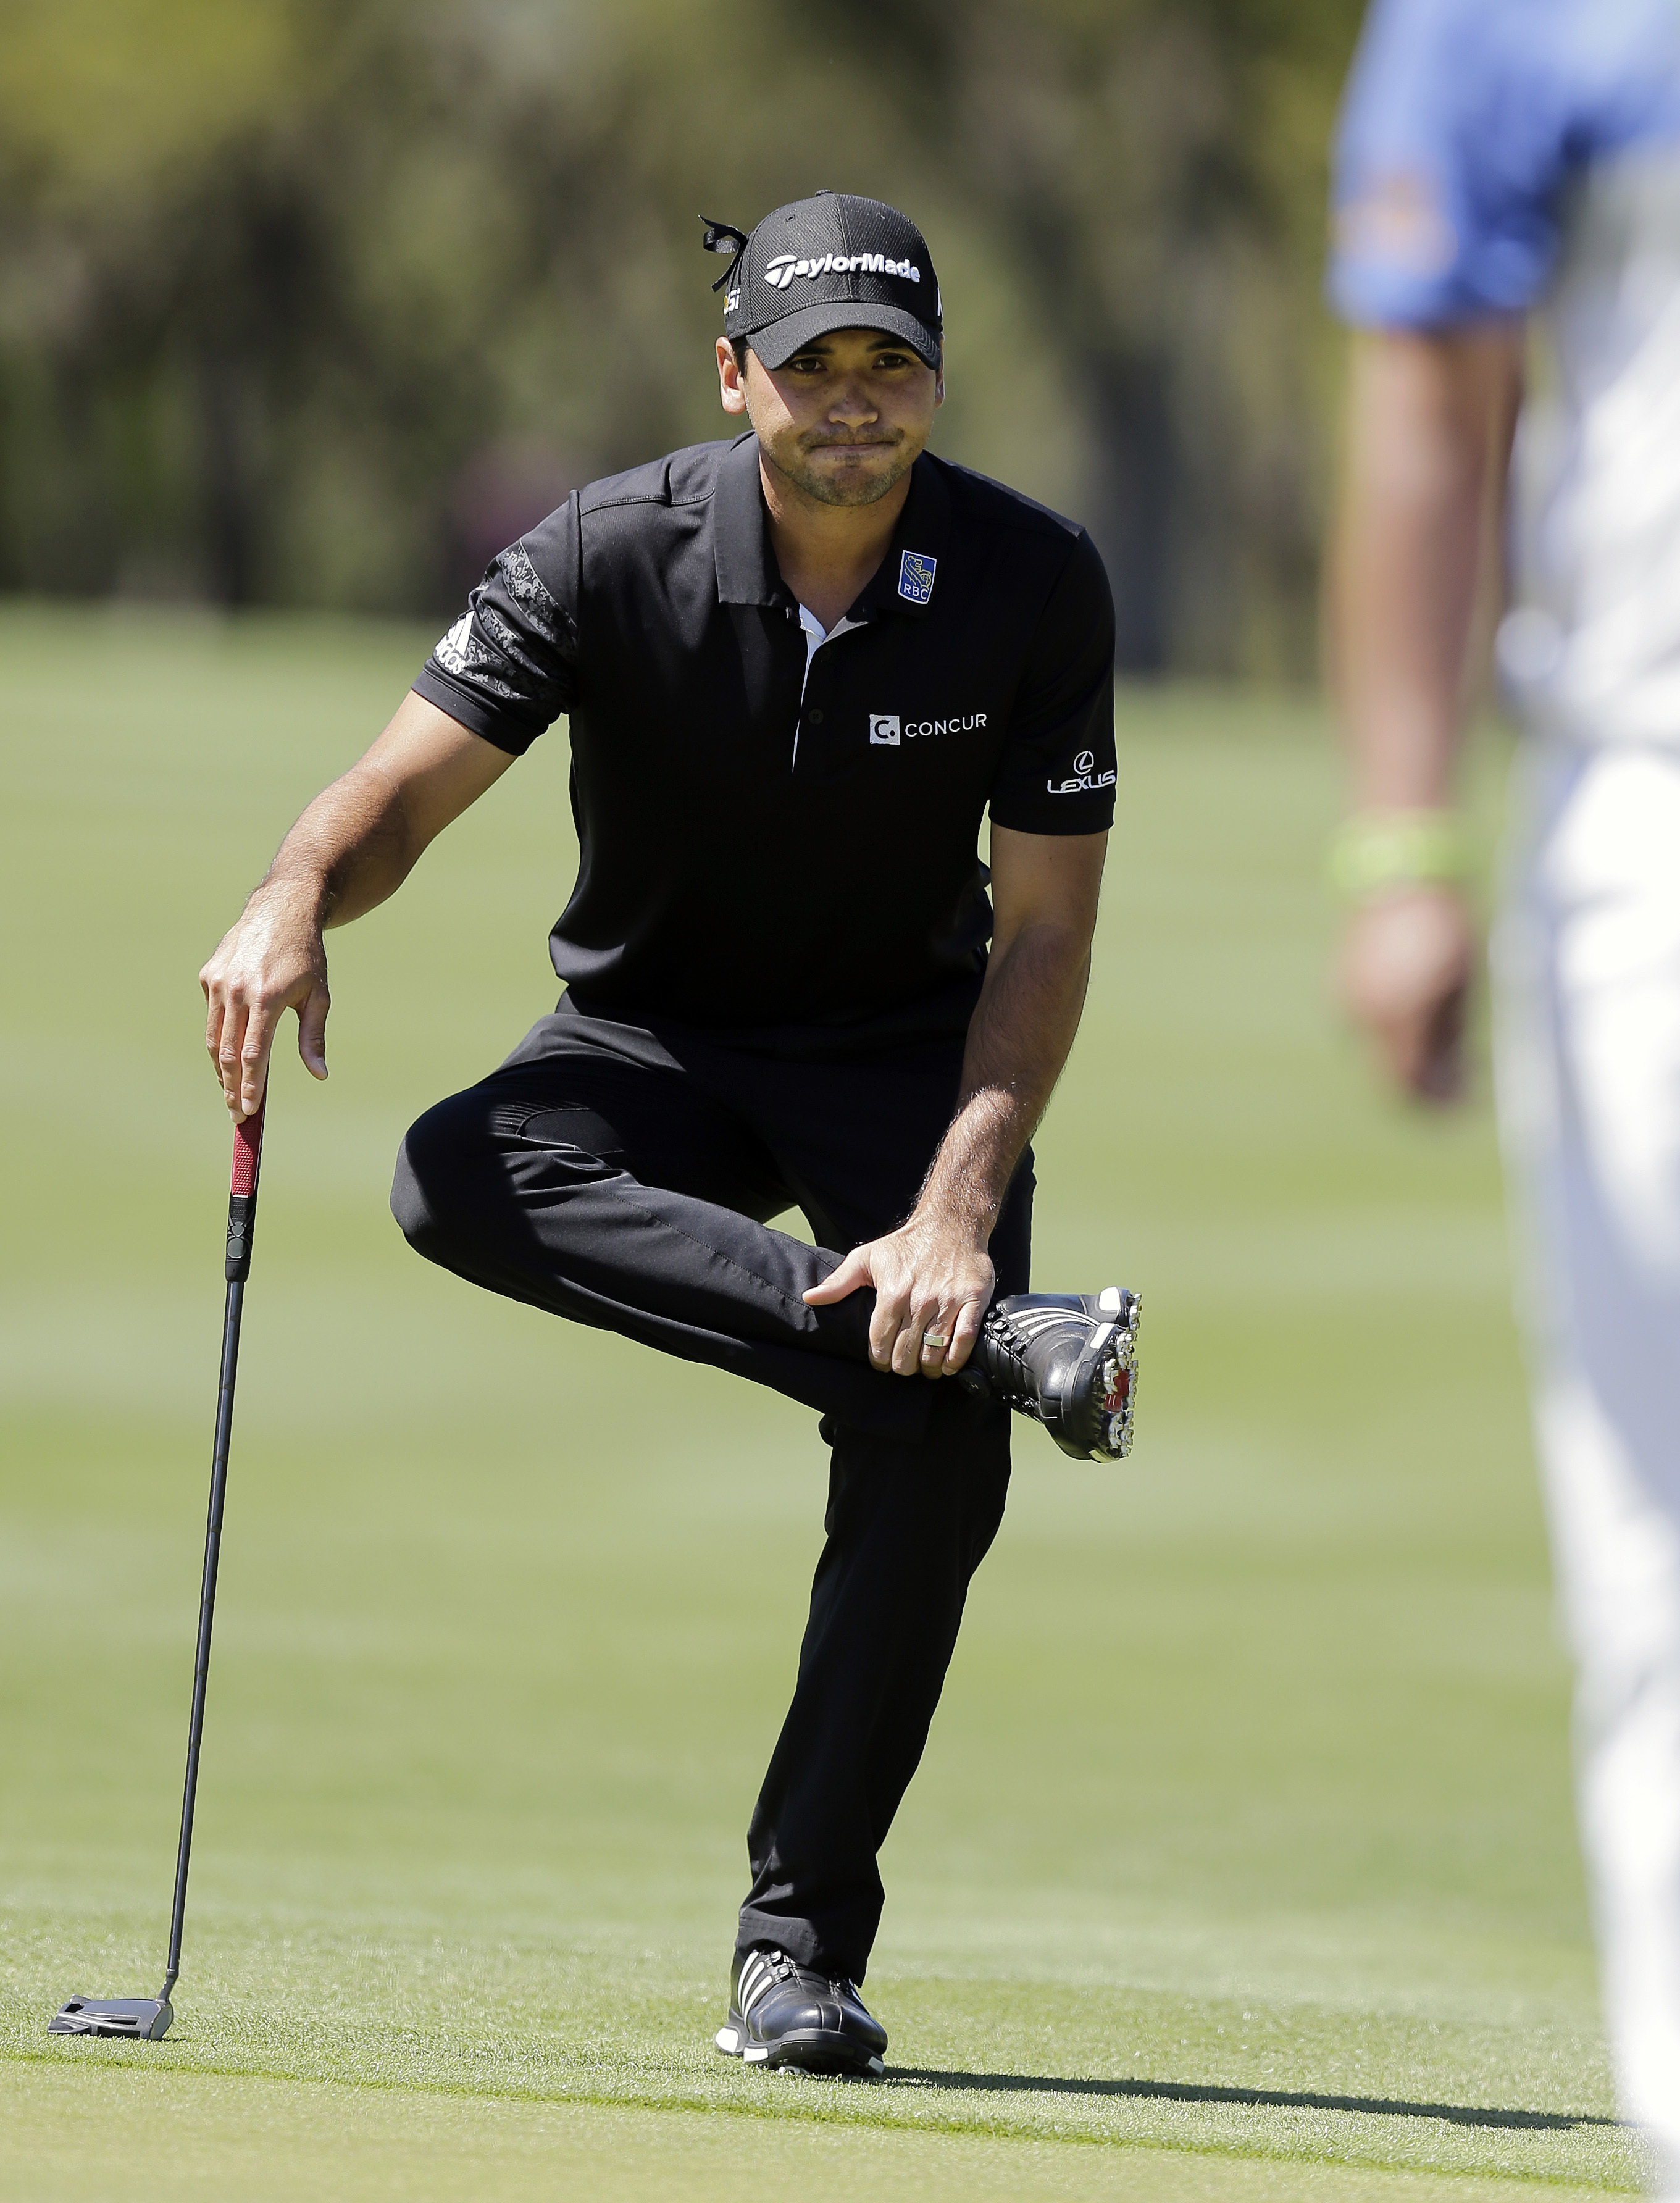 Jason Day, of Australia, stretches as he waits to putt on the first hole during round-robin play against Thongchai Jaidee at the Dell Match Play Championship golf tournament at Austin County Club, Thursday, March 24, 2016, in Austin, Texas. (AP Photo/Eric